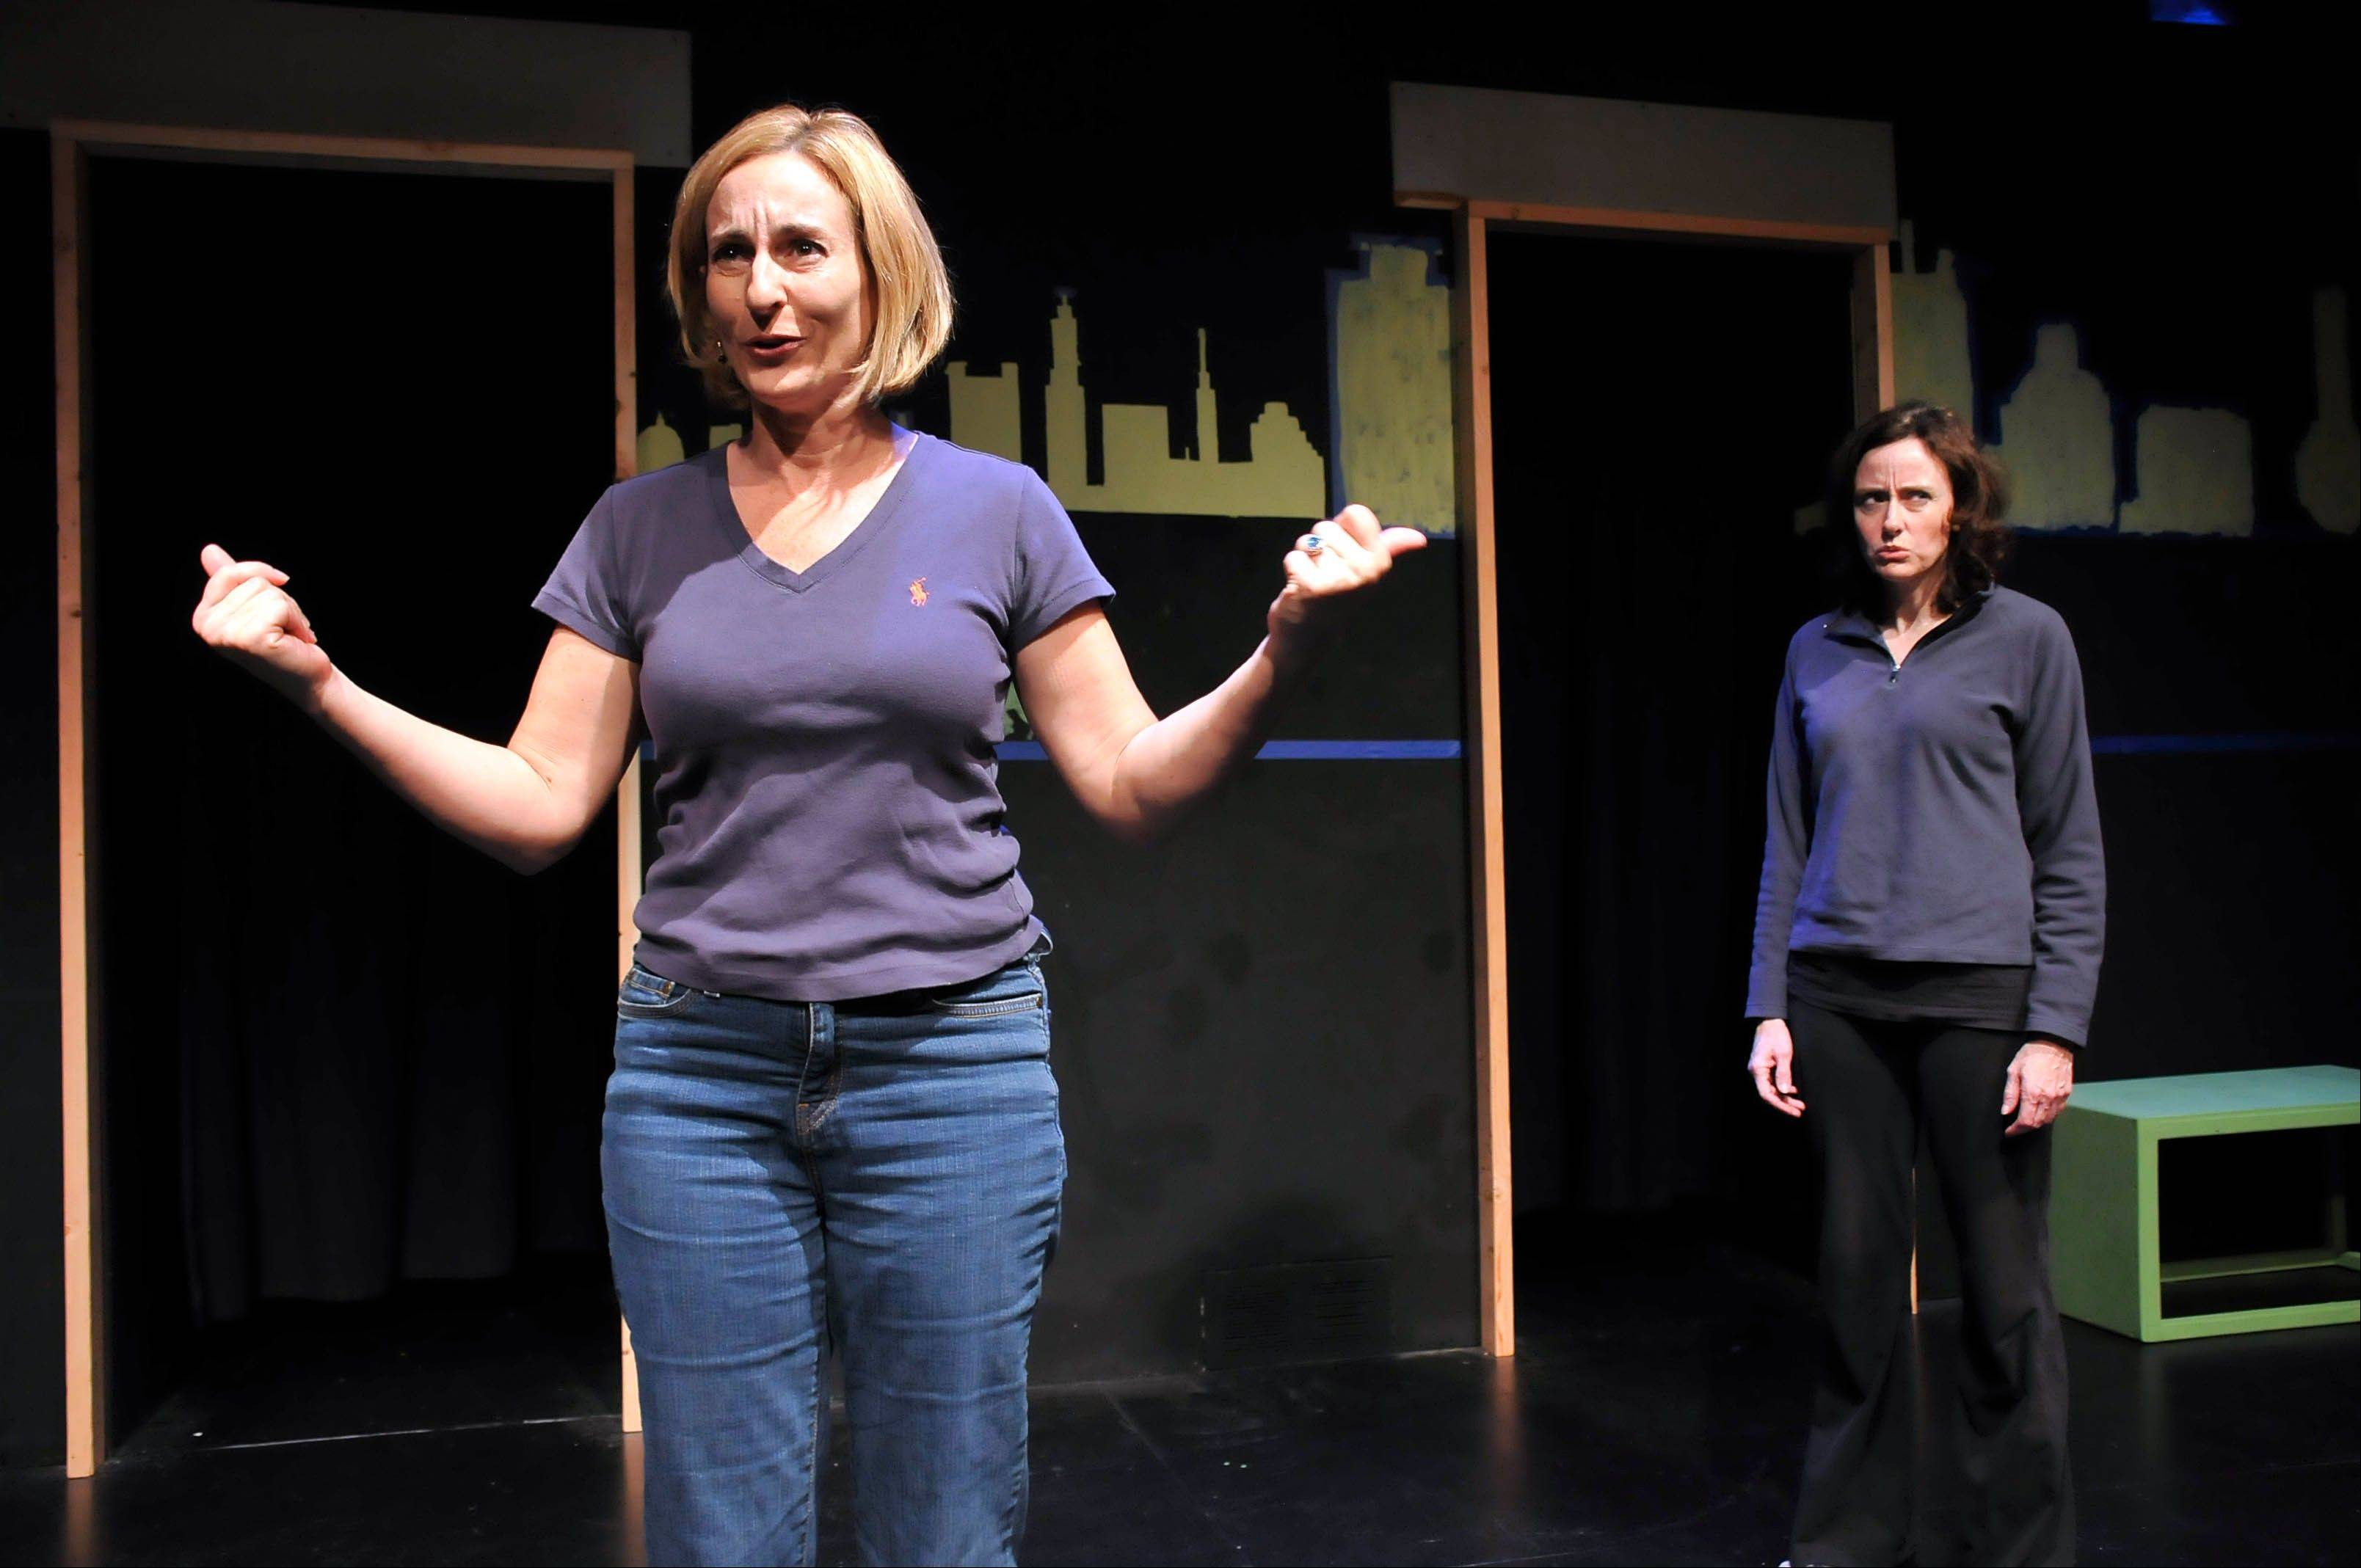 Michelle Randag as Maggy Burroughs and Lori Rohr as Maggie Mulroney in Catherine Butterfield�s �Joined at the Head� at the Village Theatre Guild in Glen Ellyn.